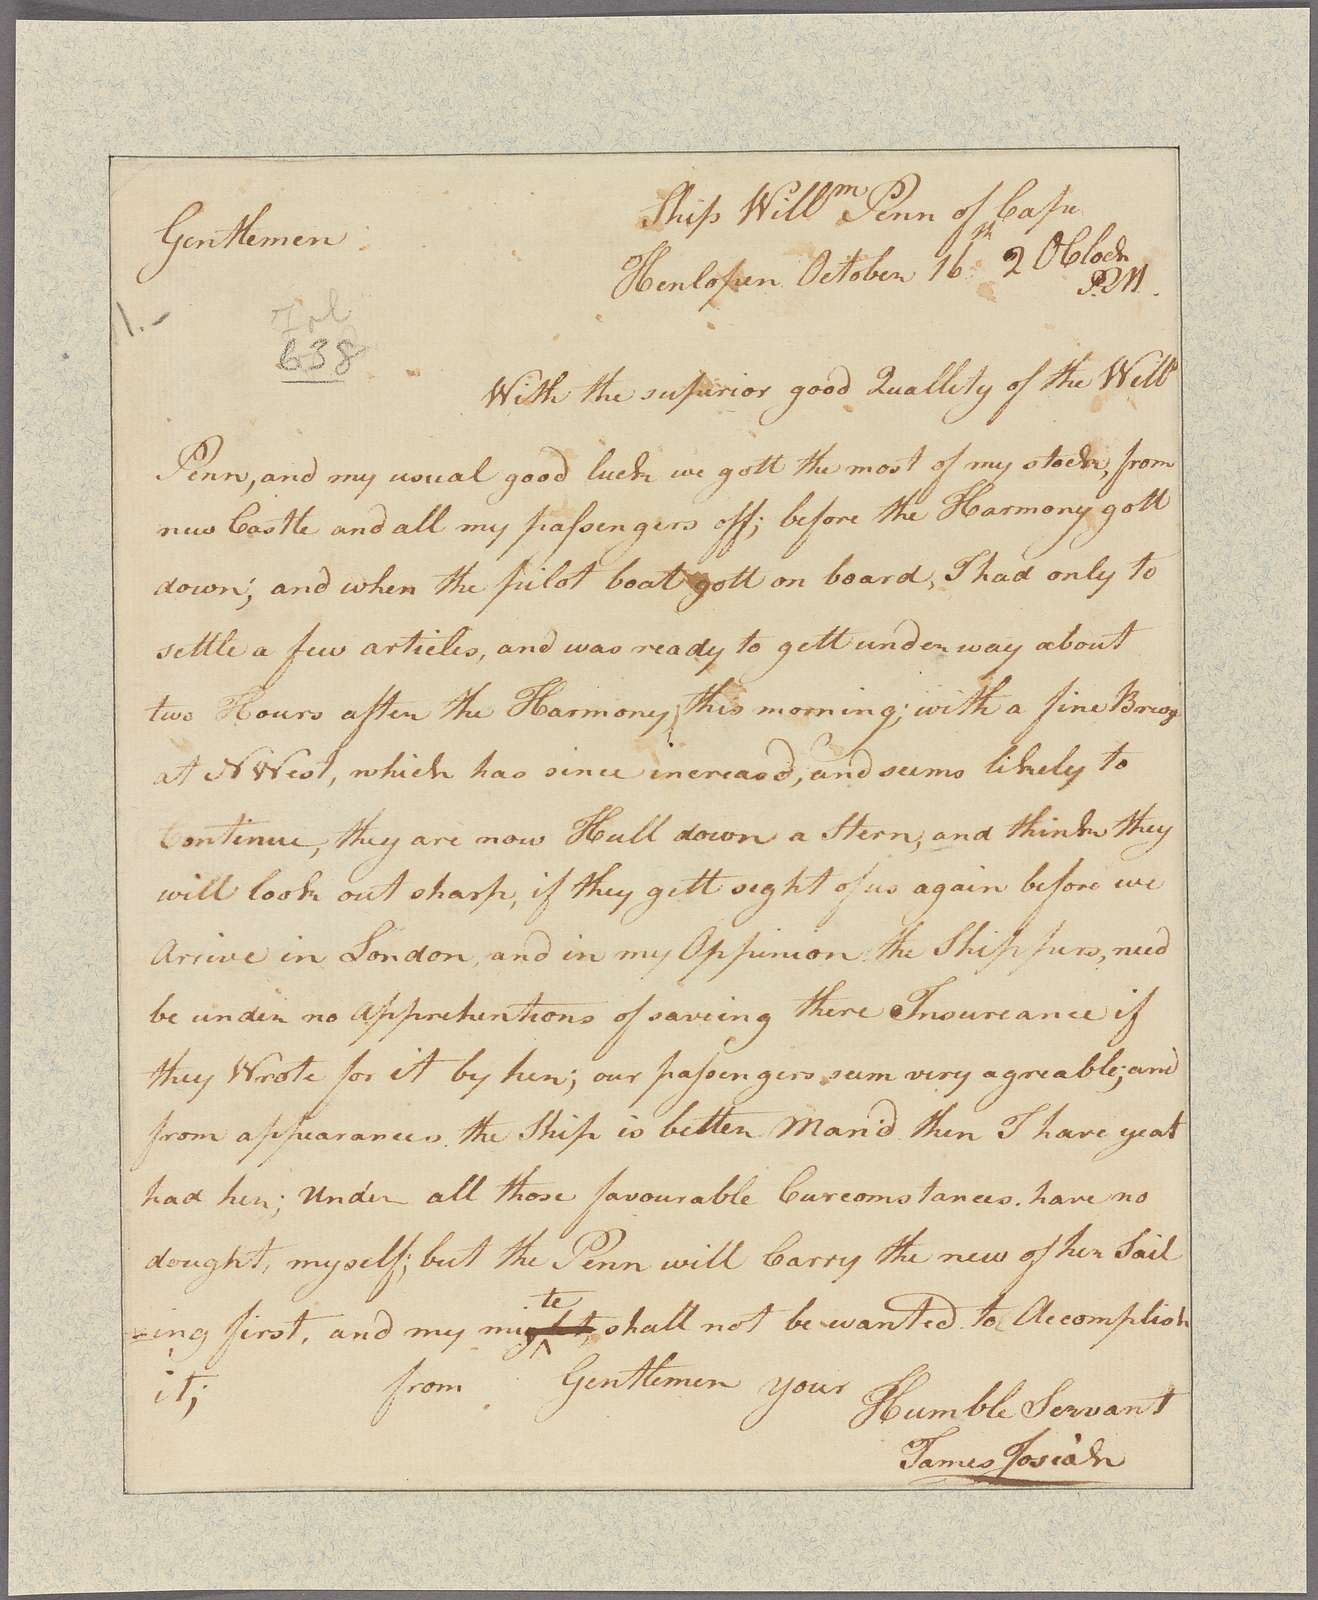 Letter to Messrs. Jesse and Robt Waln, Philadelphia